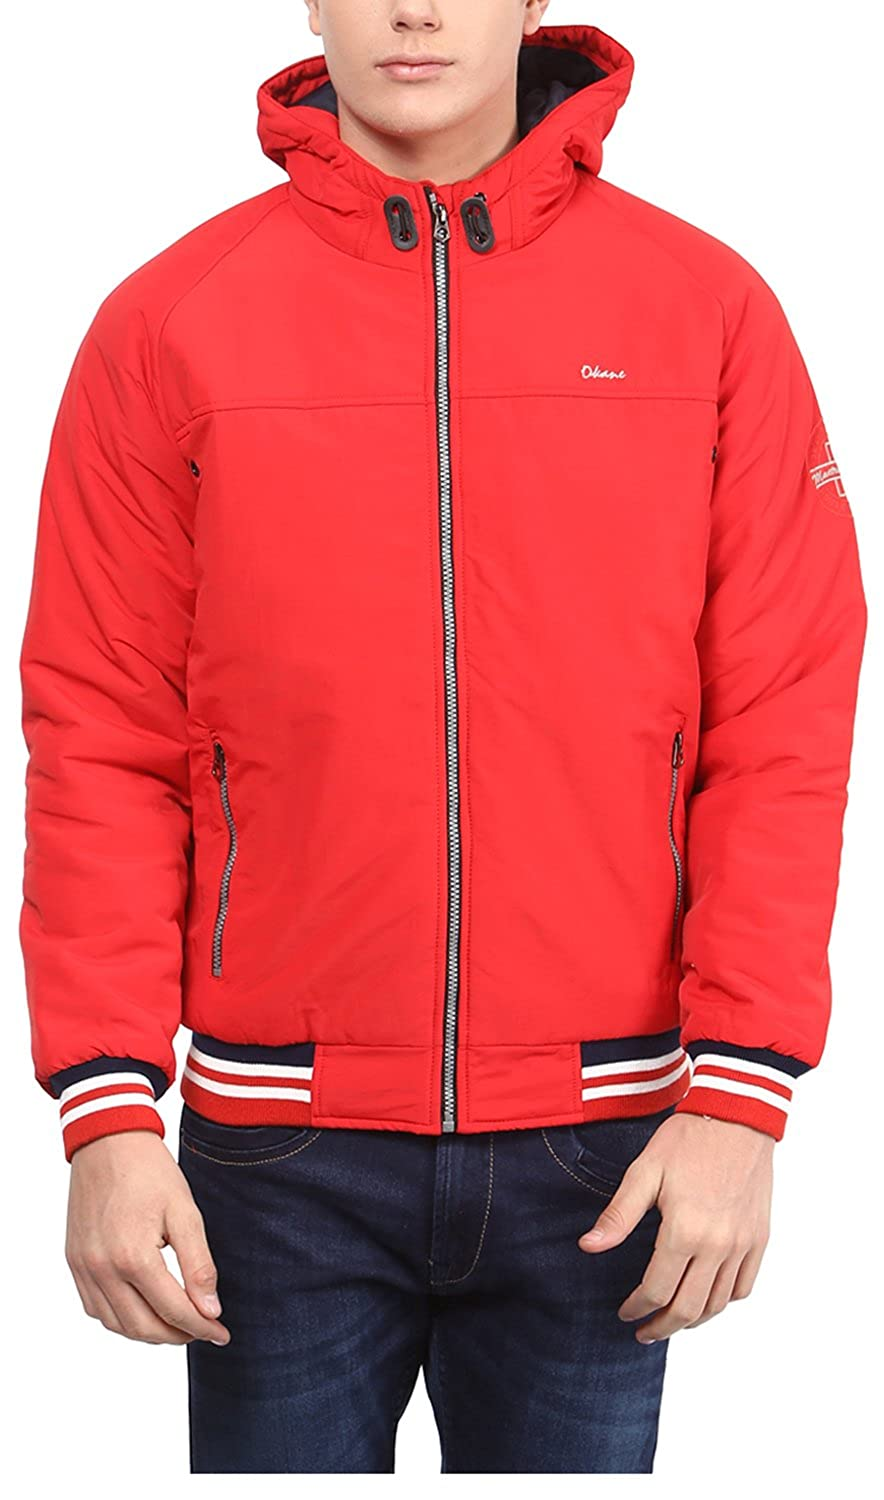 Okane Men's Nylon Hooded Jacket